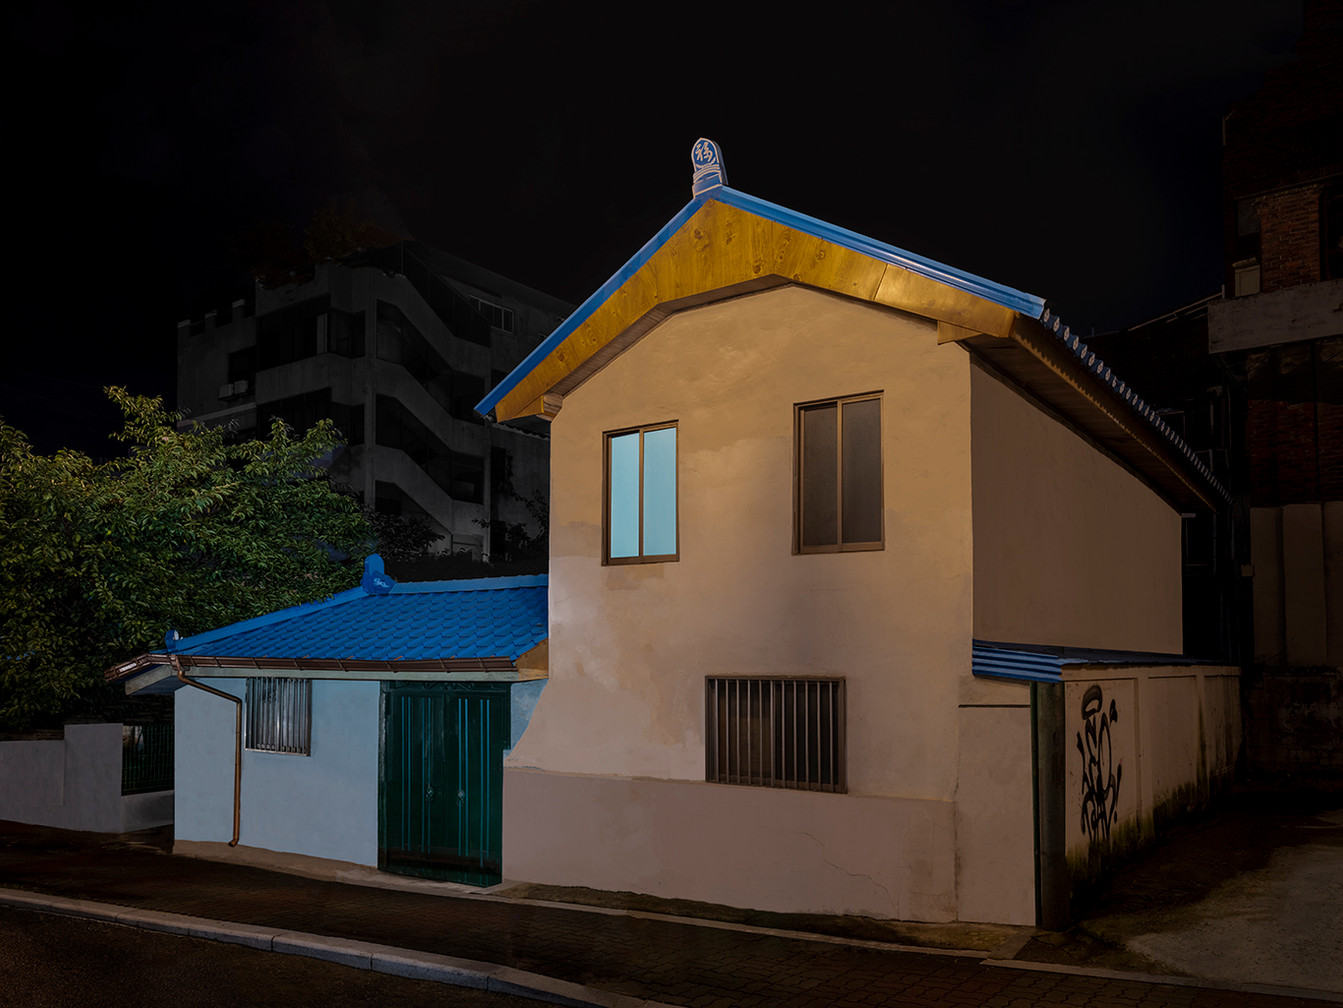 The Houses at Night #49